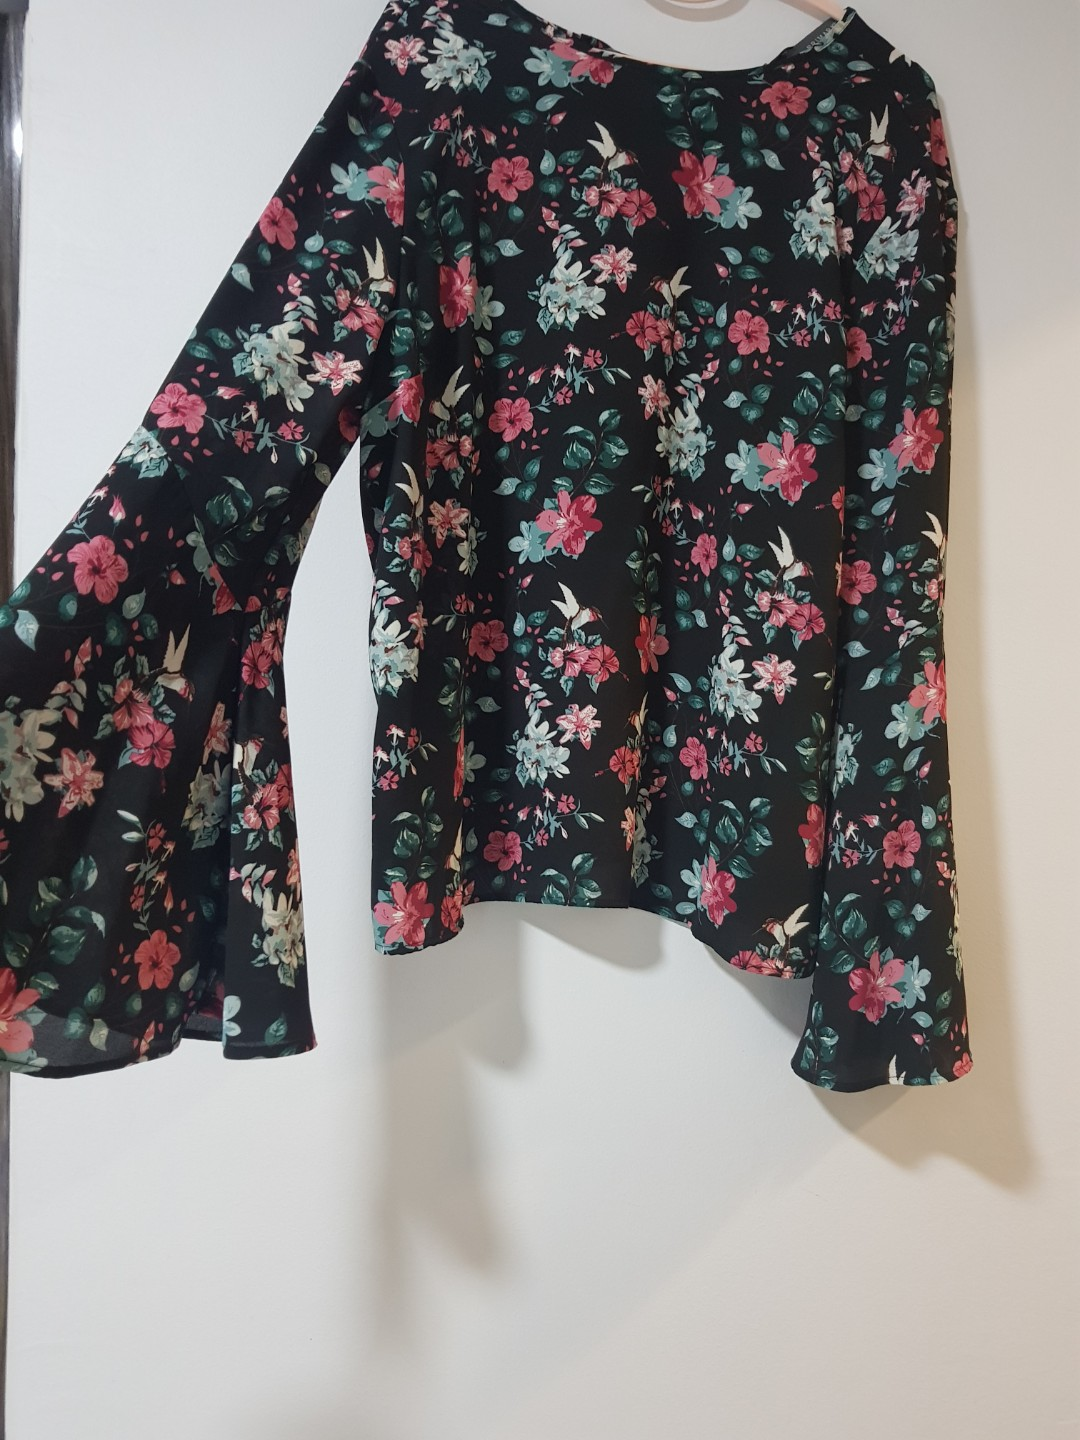 Primark Floral Skirt Skirts Size 14 Clear And Distinctive